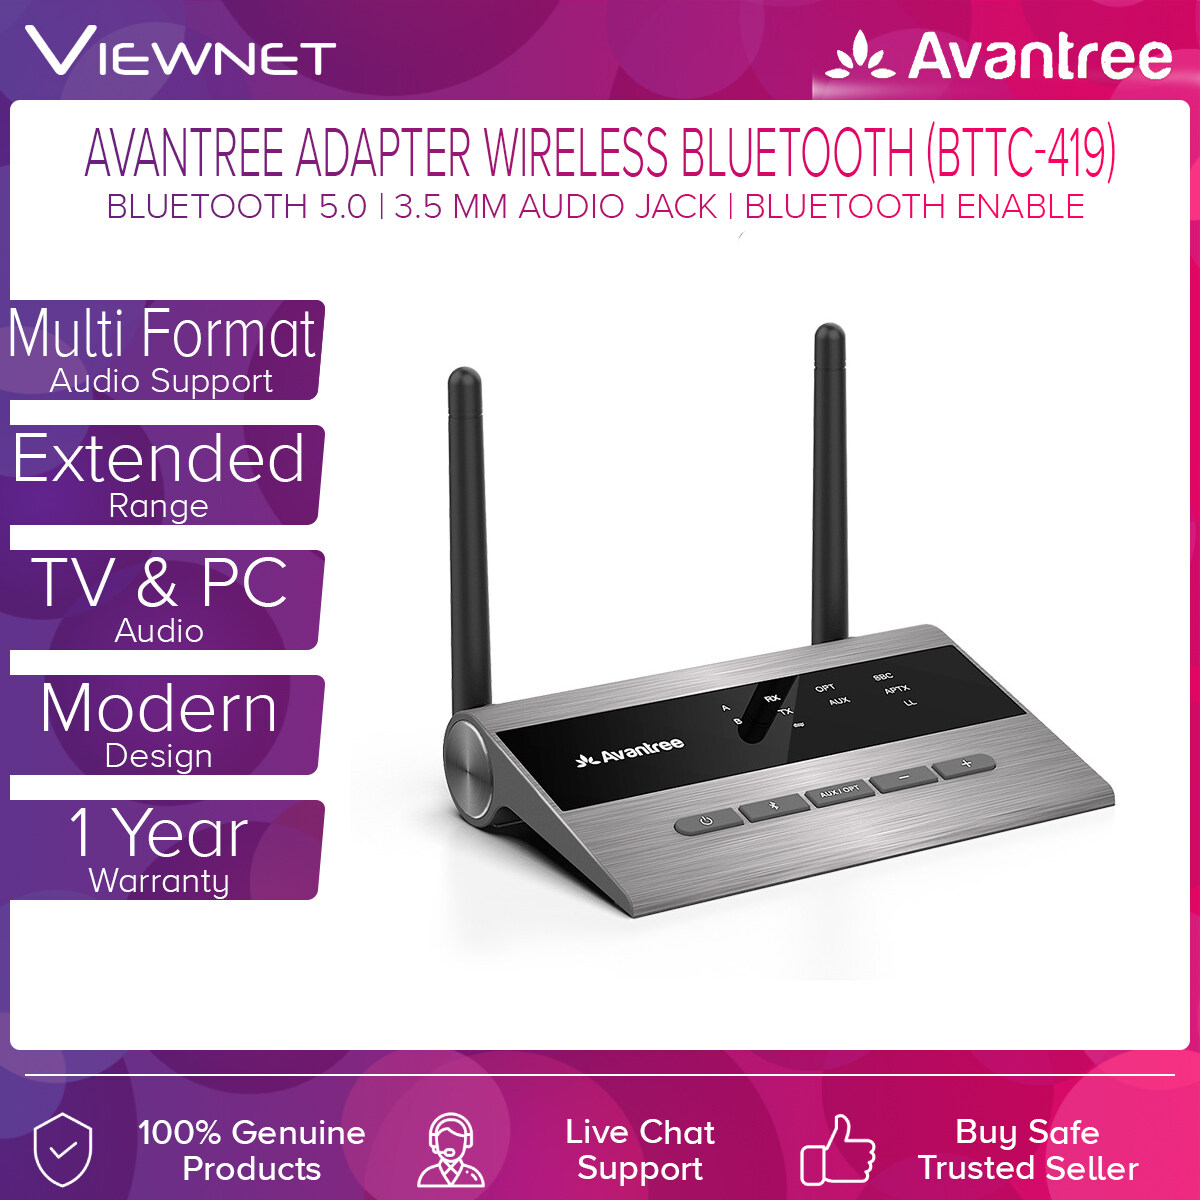 Avantree Adapter Wireless Bluetooth (BTTC-419) with Audio Transmitter & Receiver for TV & PC Audio, Home Stereo Speakers, Digital Optical, 3.5 mm Audio Jack, RCA